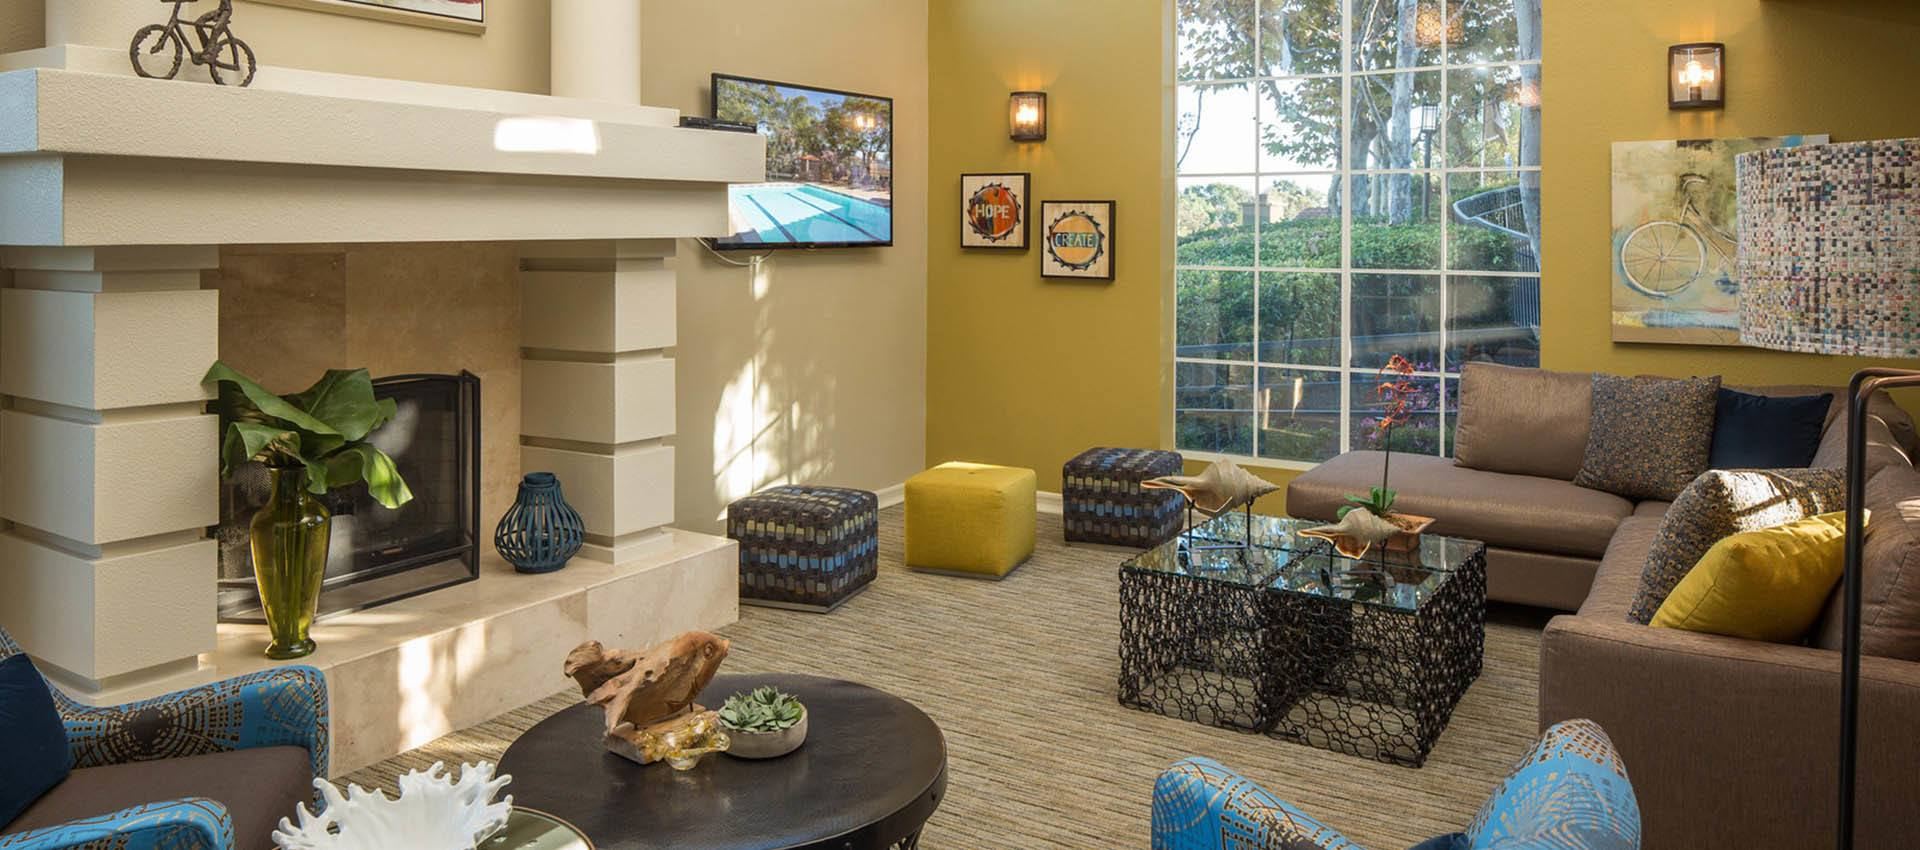 Clubhouse Seating Area With Tv at Niguel Summit Condominium Rentals in Laguna Niguel, CA